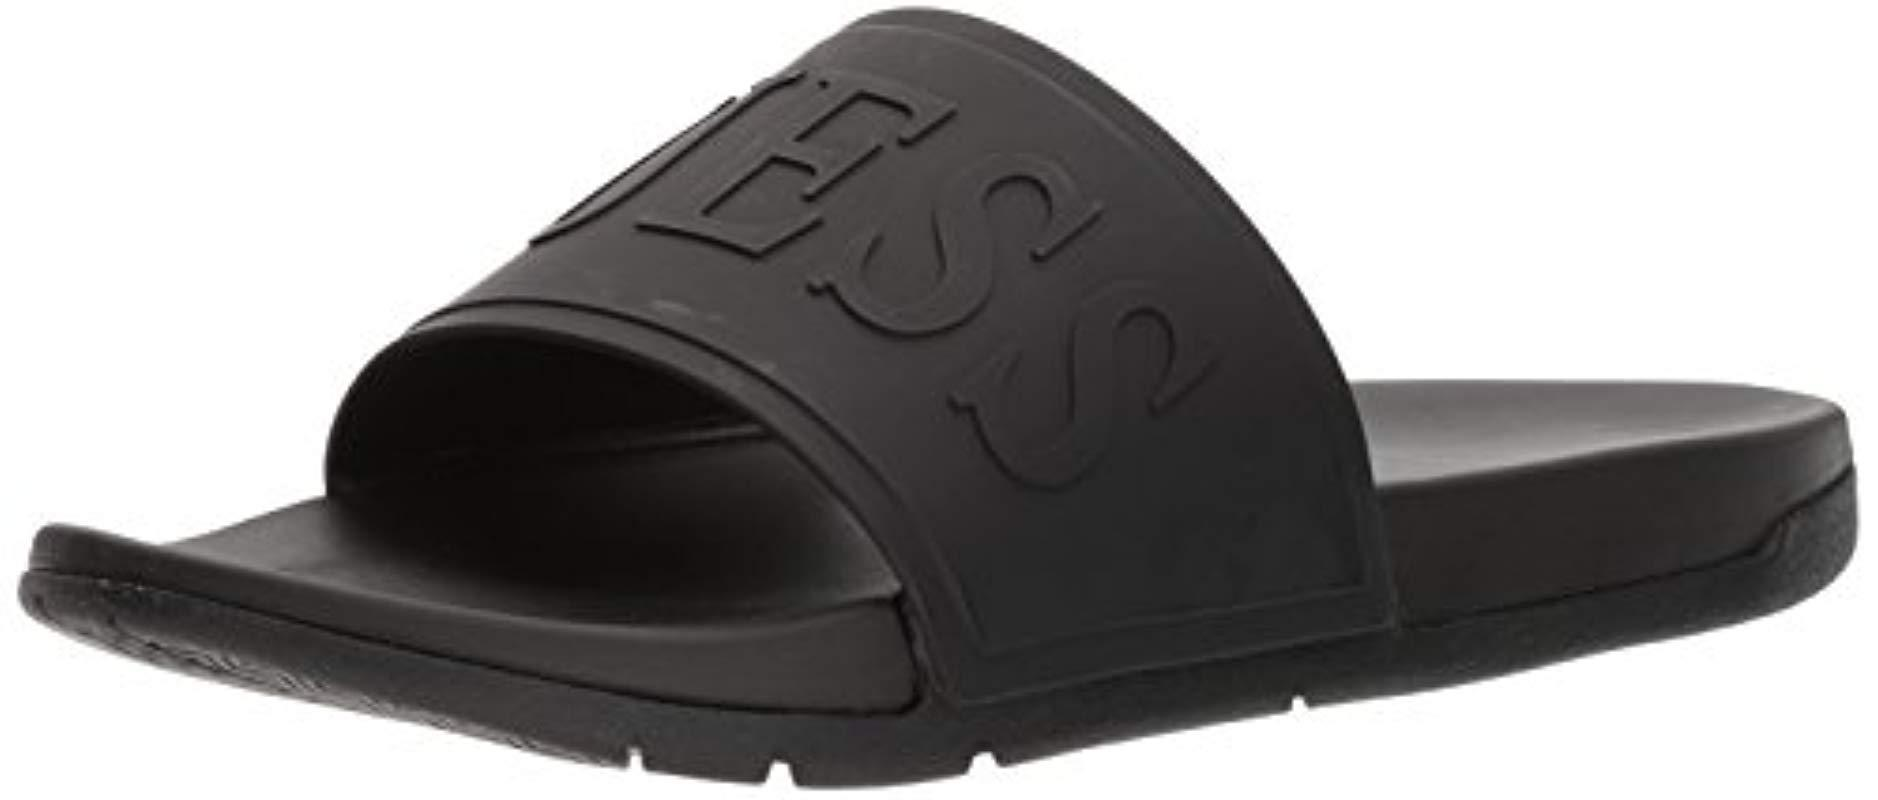 aaa7180aba55fe Lyst - Guess Delfino Sandal in Black for Men - Save 52%